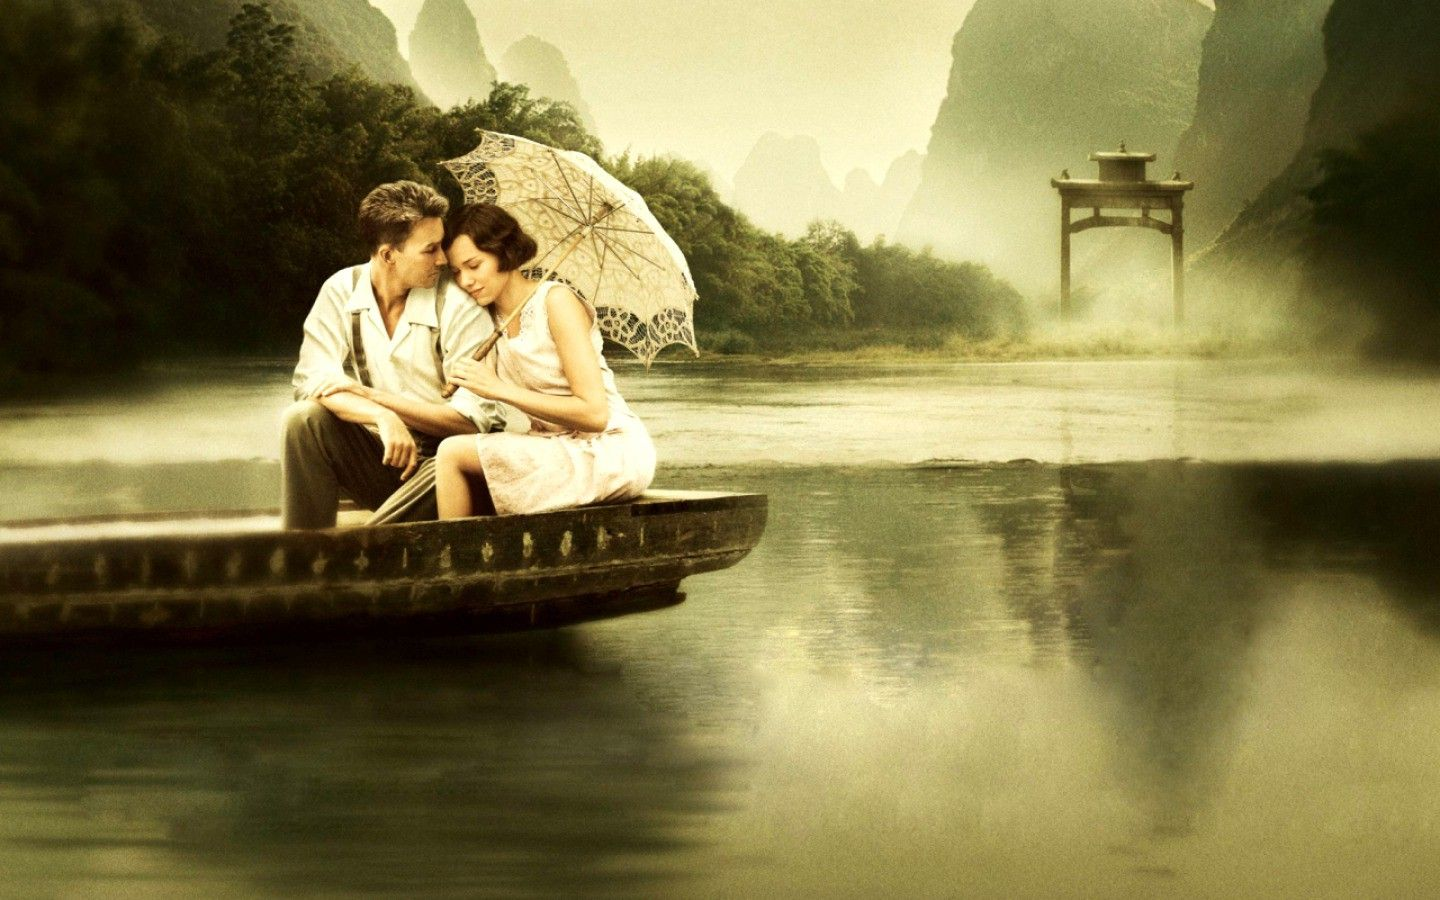 download couple on boat hd wallpapers http://www.superwallpapers.in